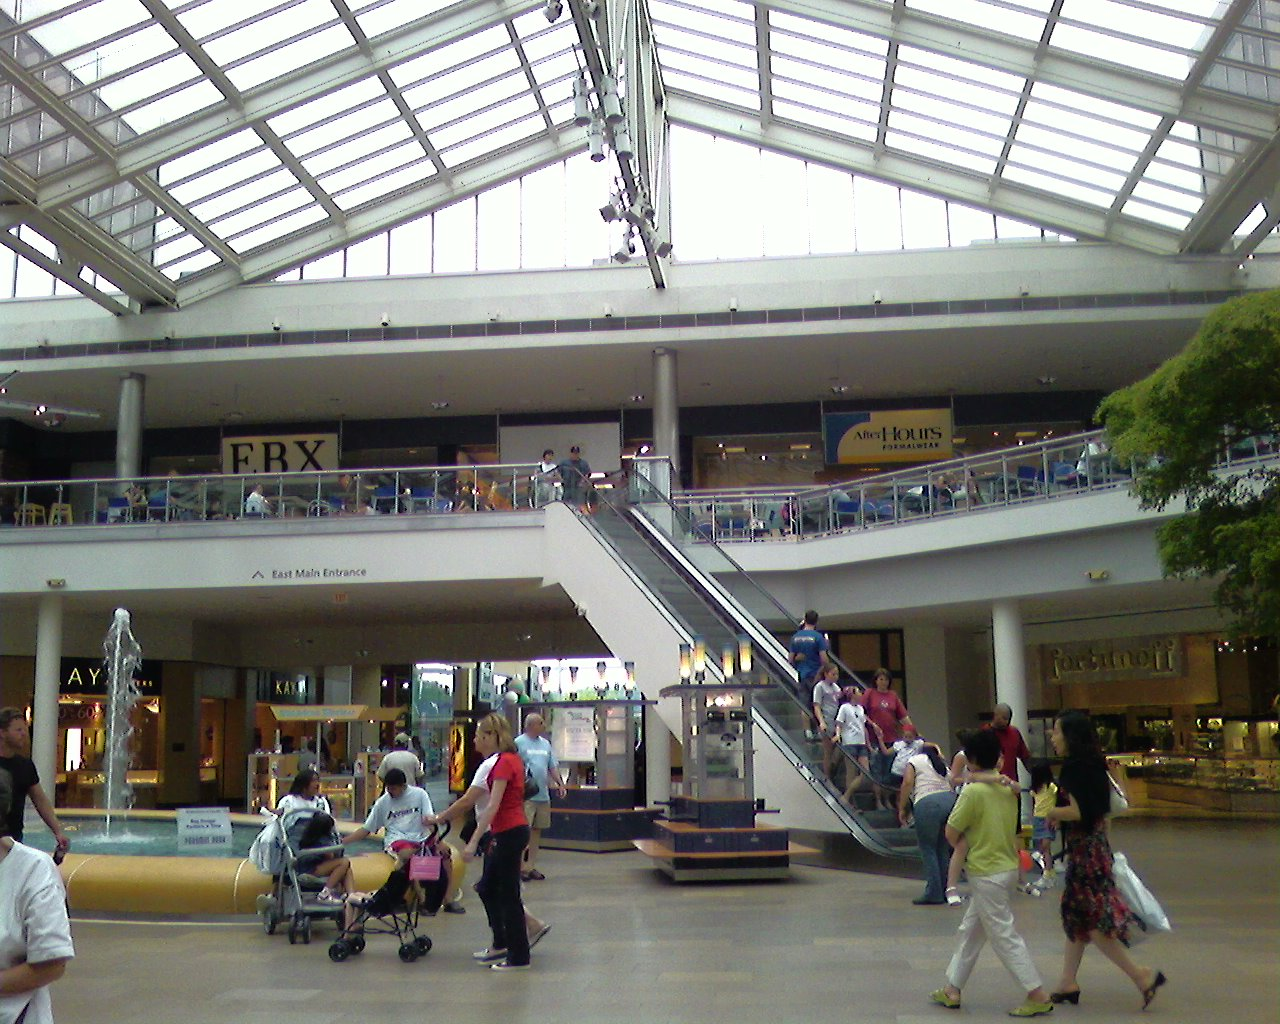 Paramus boasts a diverse economic and cultural community due to the enormous mix of business, tourism, and entertainment generated by Teterboro Airport, the Meadowlands Sports Complex, Westfield Garden State Plaza, Paramus Park, the outlets at Bergen Town Center, Fashion Center, 35 Plaza, the Shops at Riverside, and other nearby shopping malls.